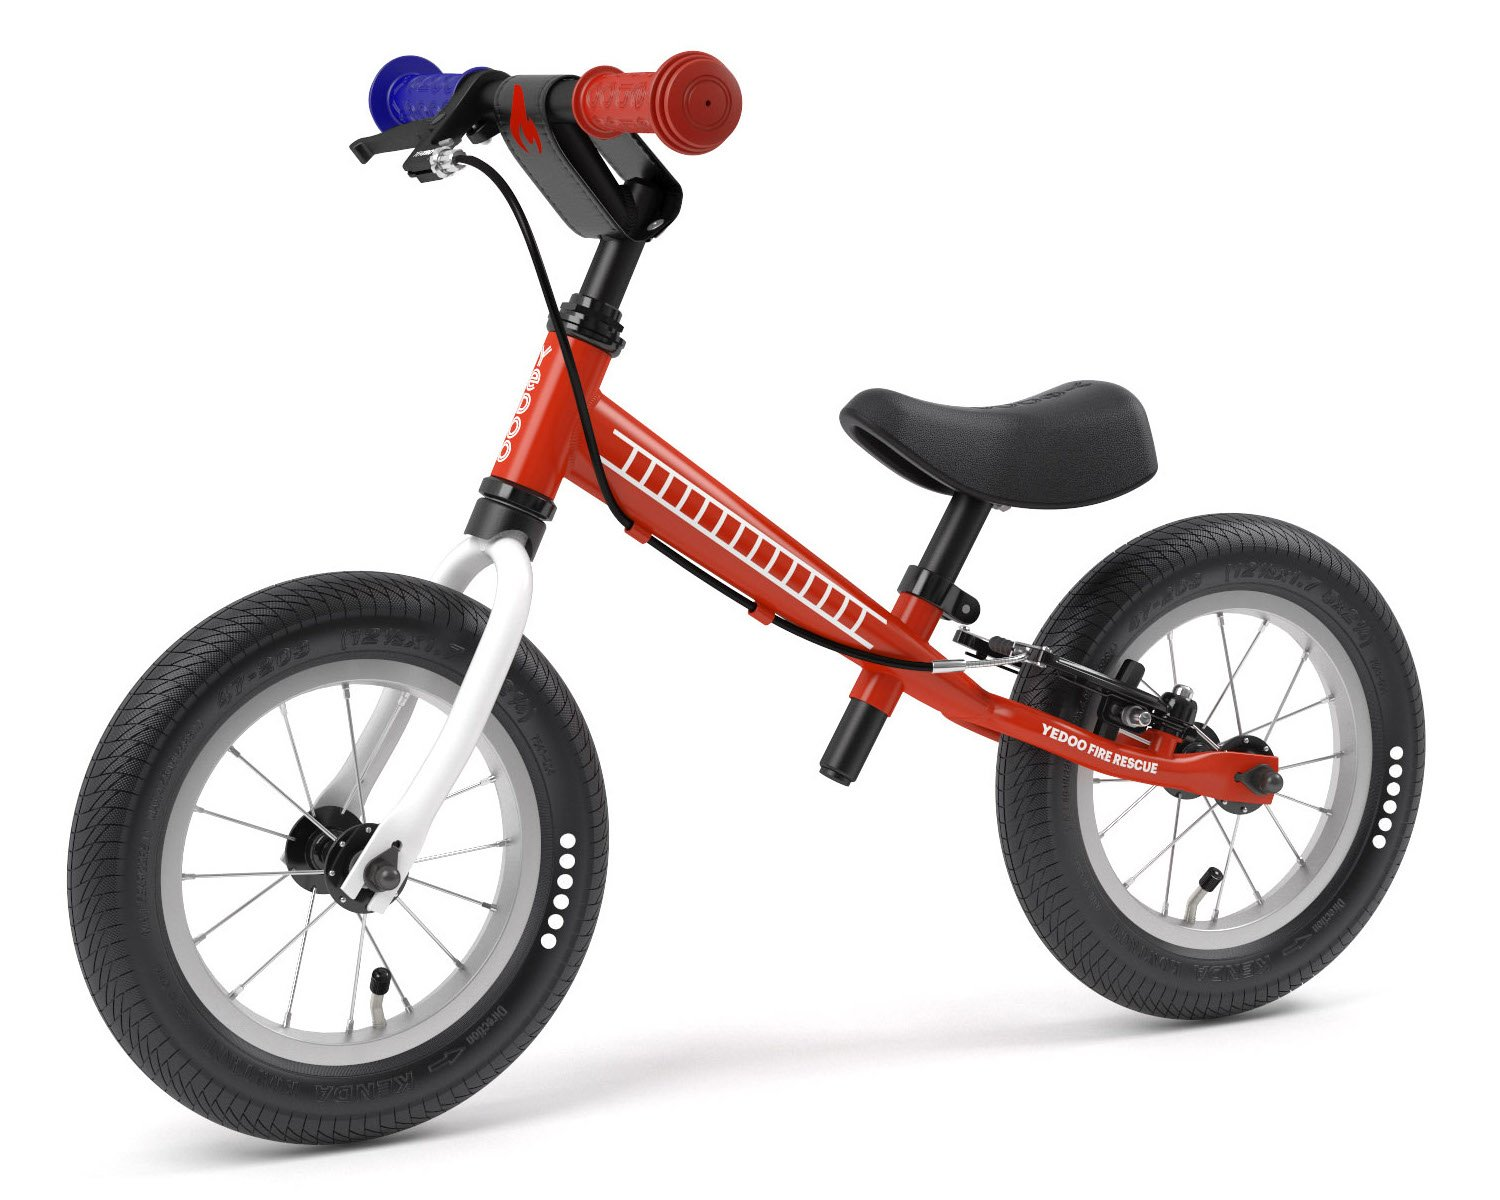 Yedoo TooToo Toddler Balance Bike for 2 Year Old | Kids 12 inch Bike WeeBikeShop